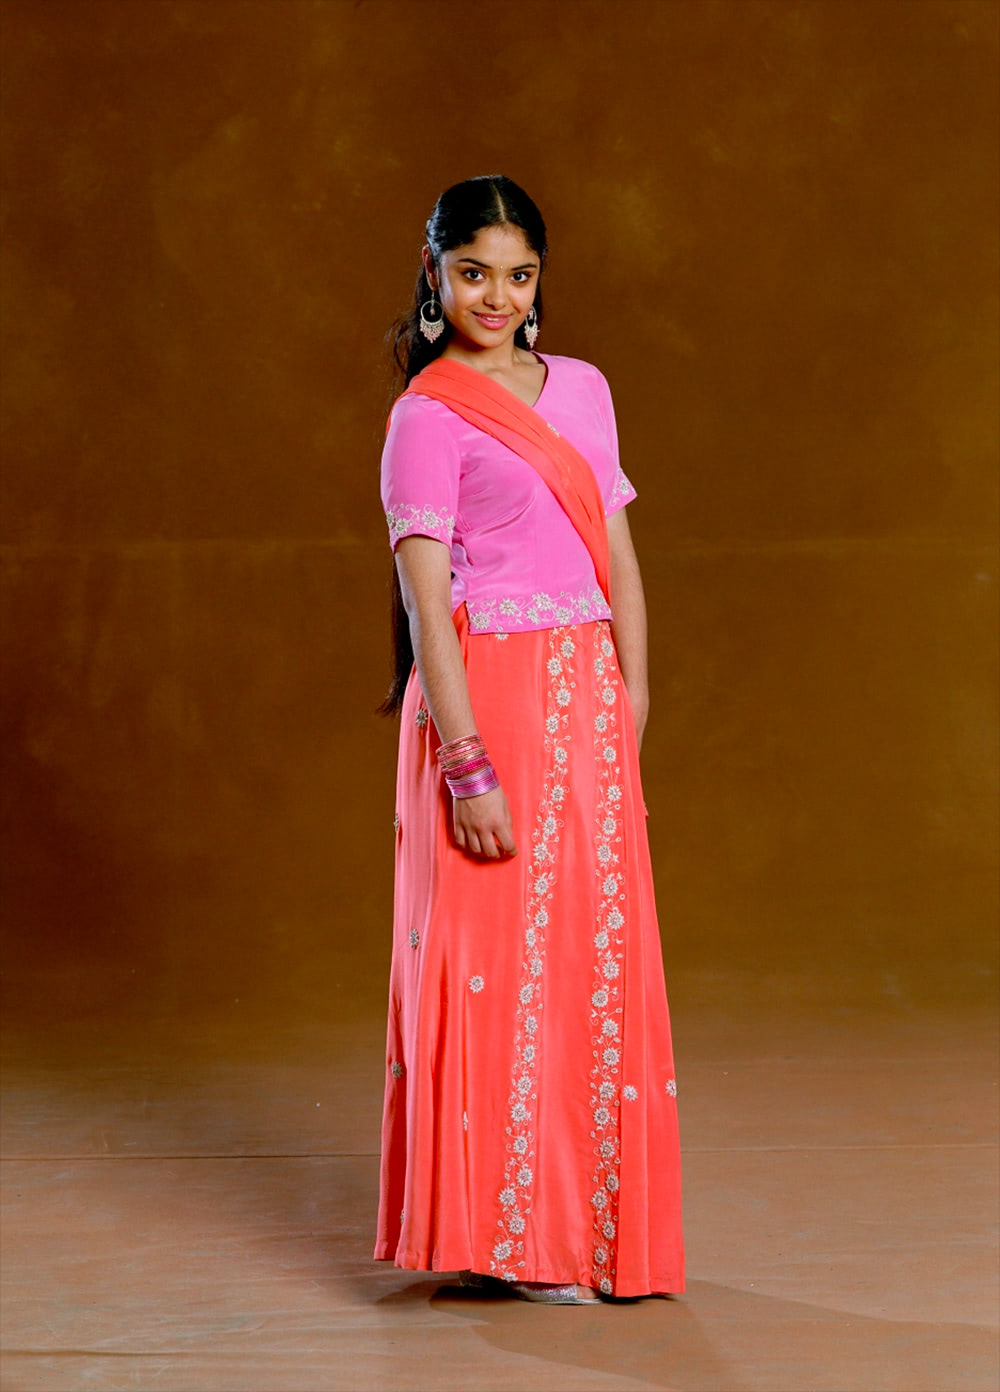 Padma Patil Yule Ball portrait